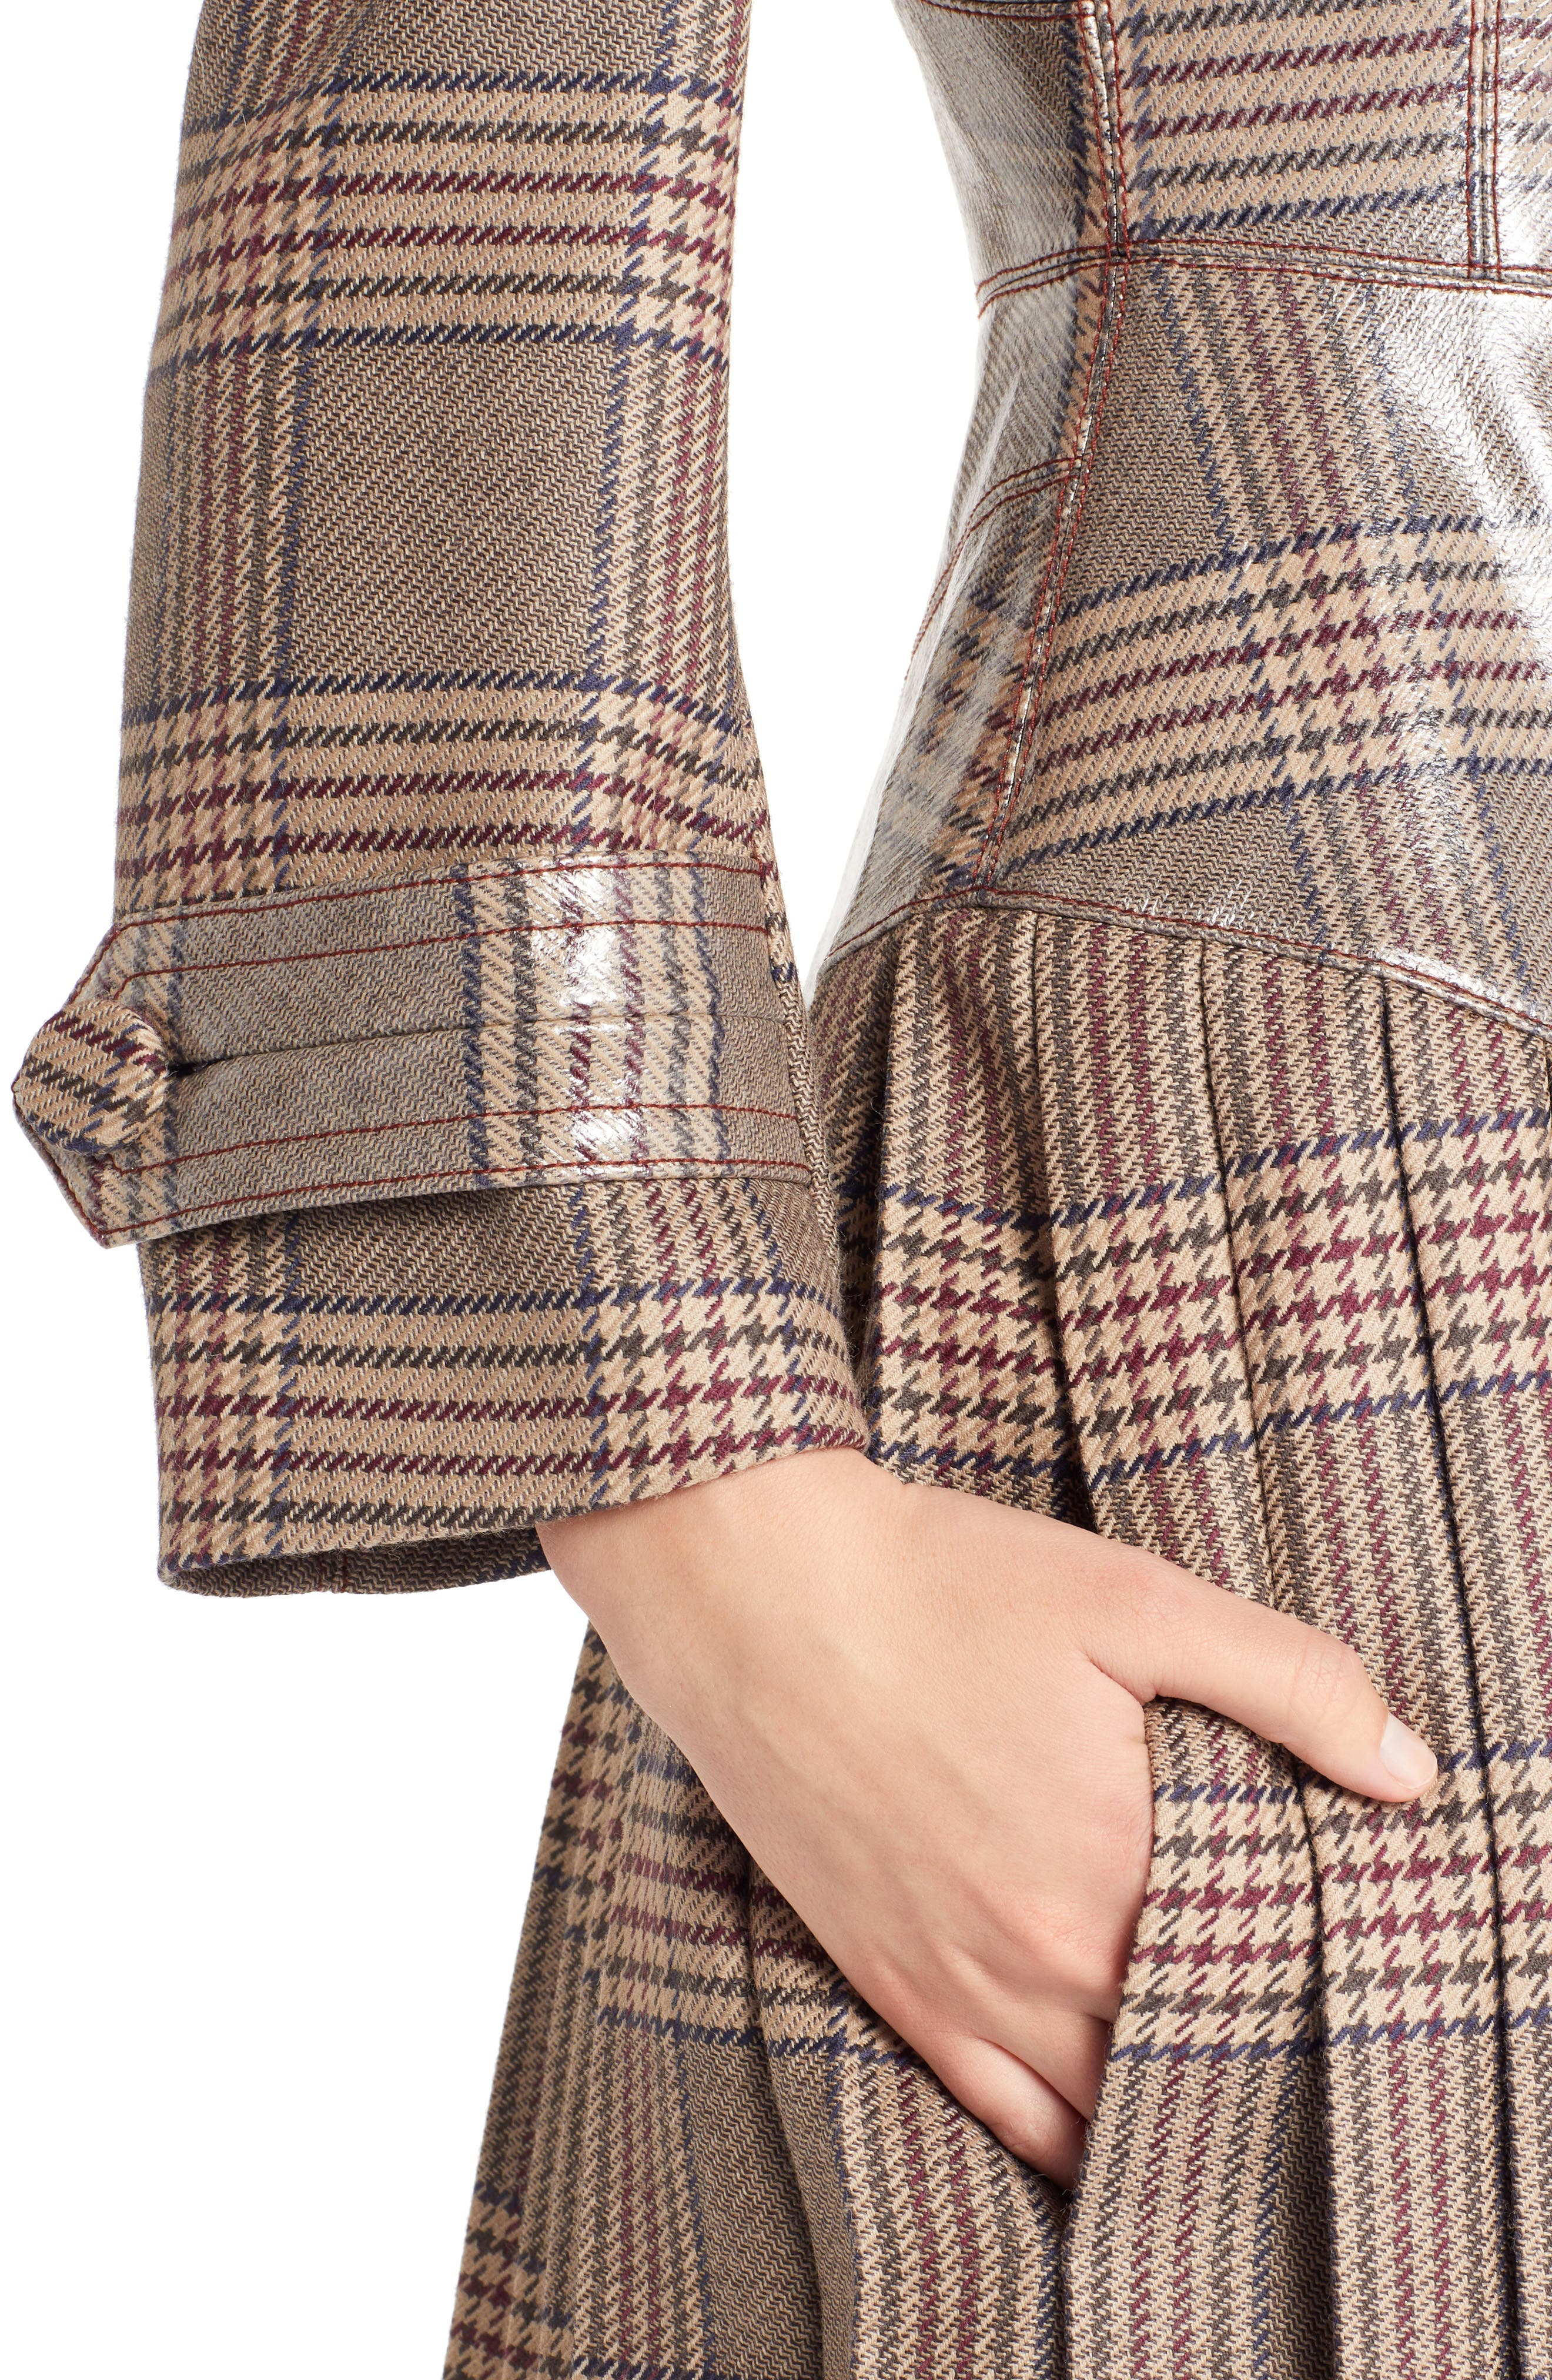 Checked Glazed Wool Trench Coat,                             Alternate thumbnail 4, color,                             024